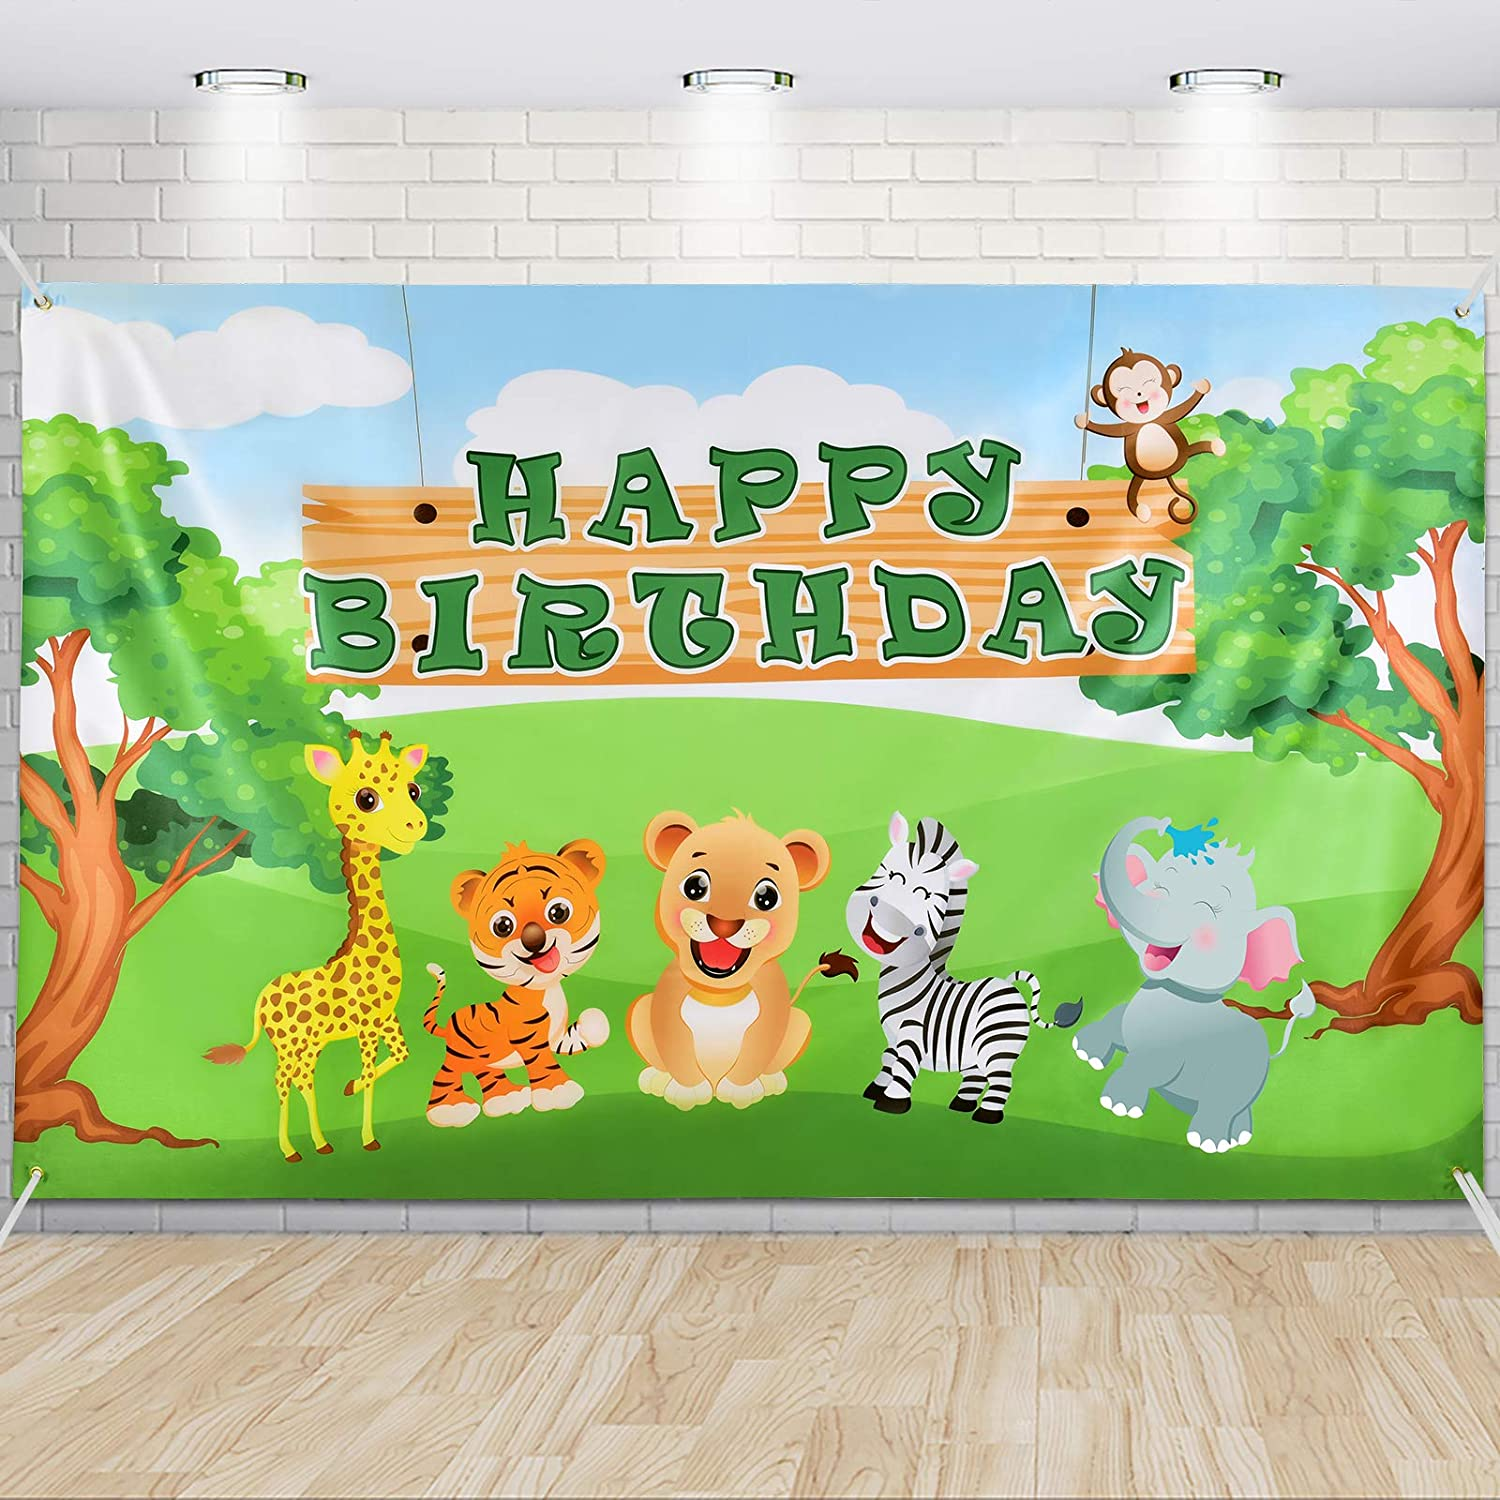 Jungle Birthday Party Decorations for Kids Jungle Safari Backdrop 73'' x 43'' Safari Animals Theme Party Supplies Large Photography Background Wall Banner Room Decor